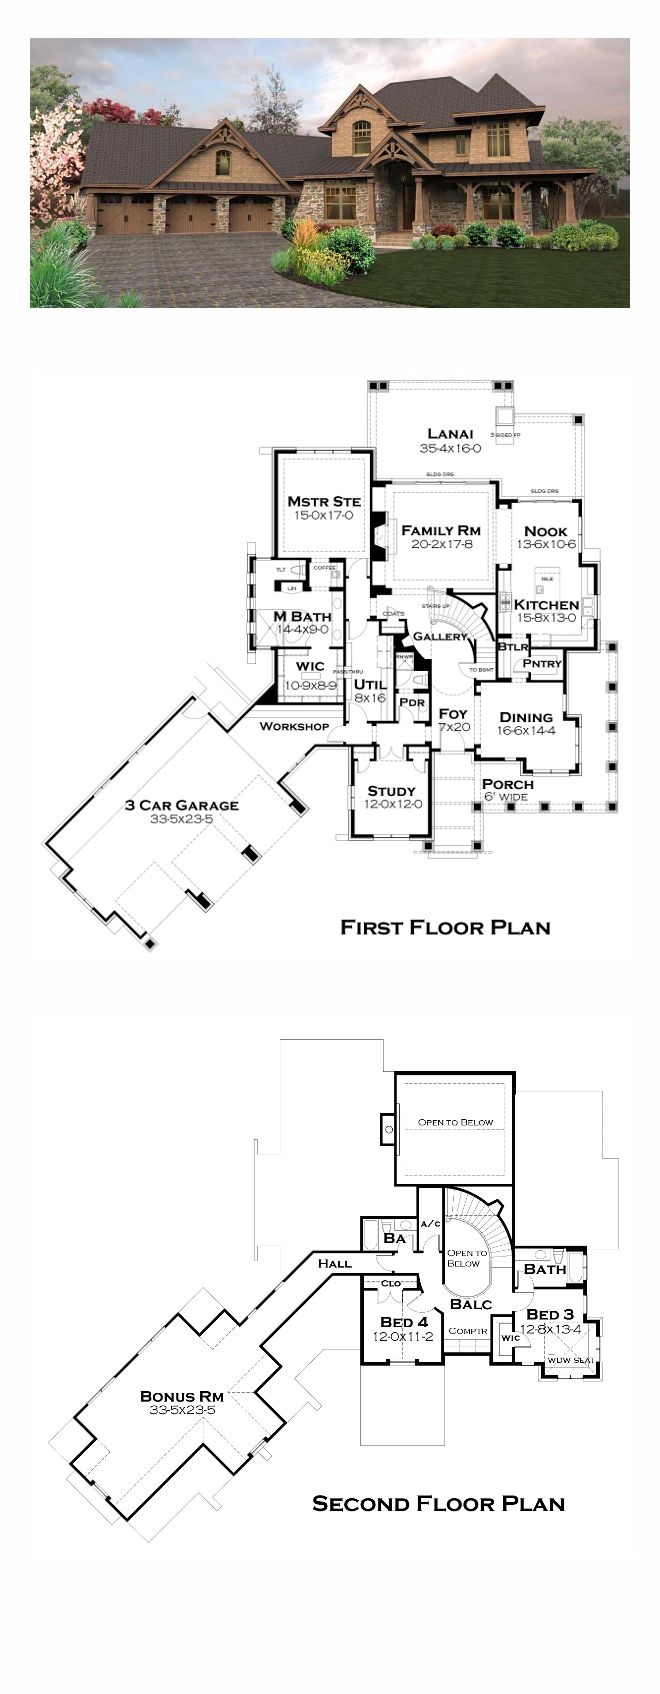 Furthermore medieval manor house on floor plans with central - Tuscan House Plan 65880 Total Living Area 3069 Sq Ft 4